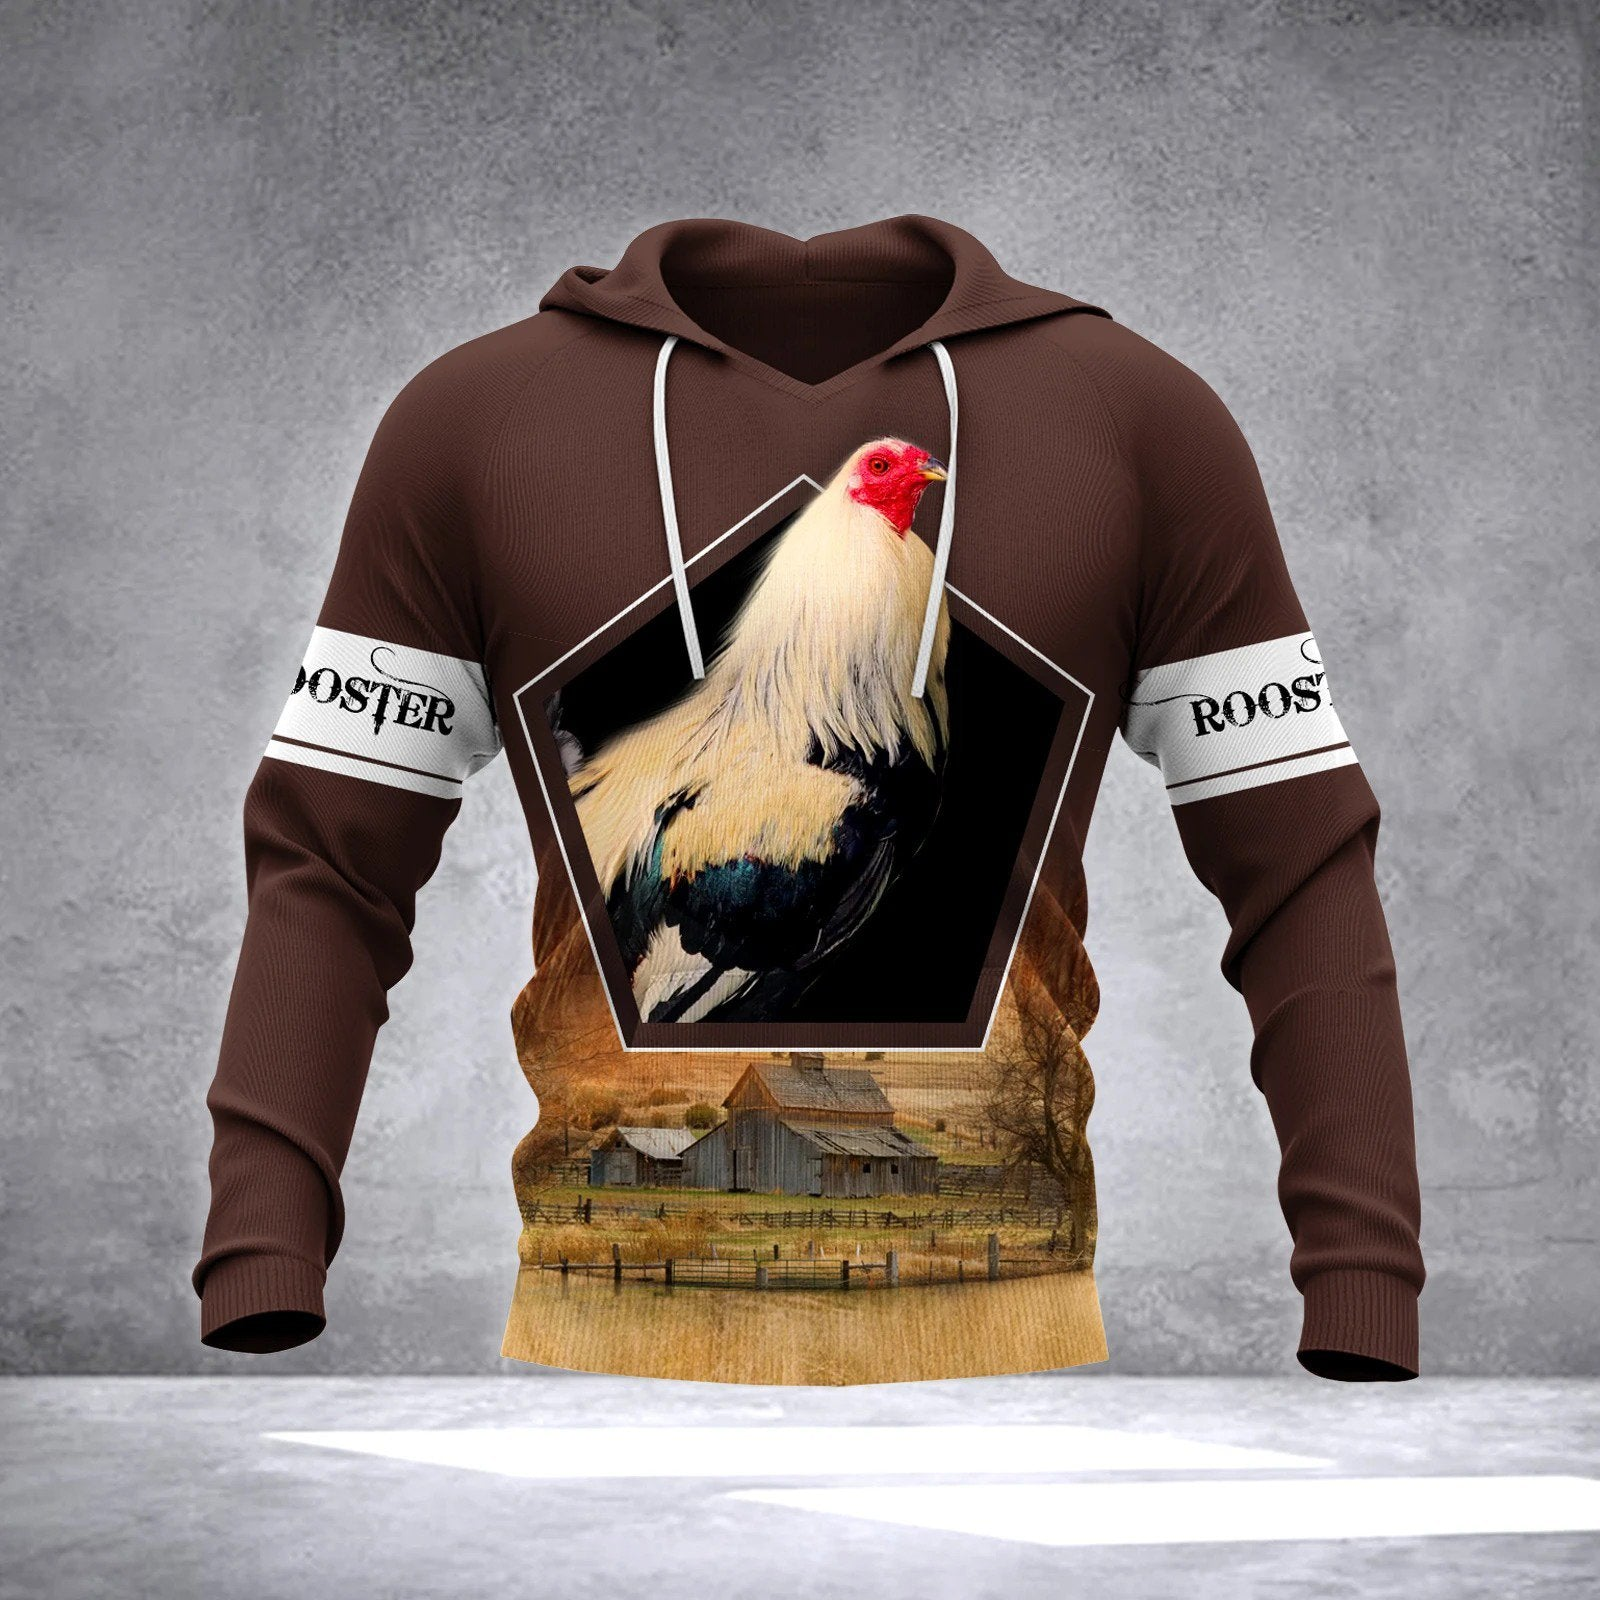 ROOSTER 3D All Over Printed Shirts for Men and Women TT241202-Apparel-TT-Hoodie-S-Vibe Cosy™